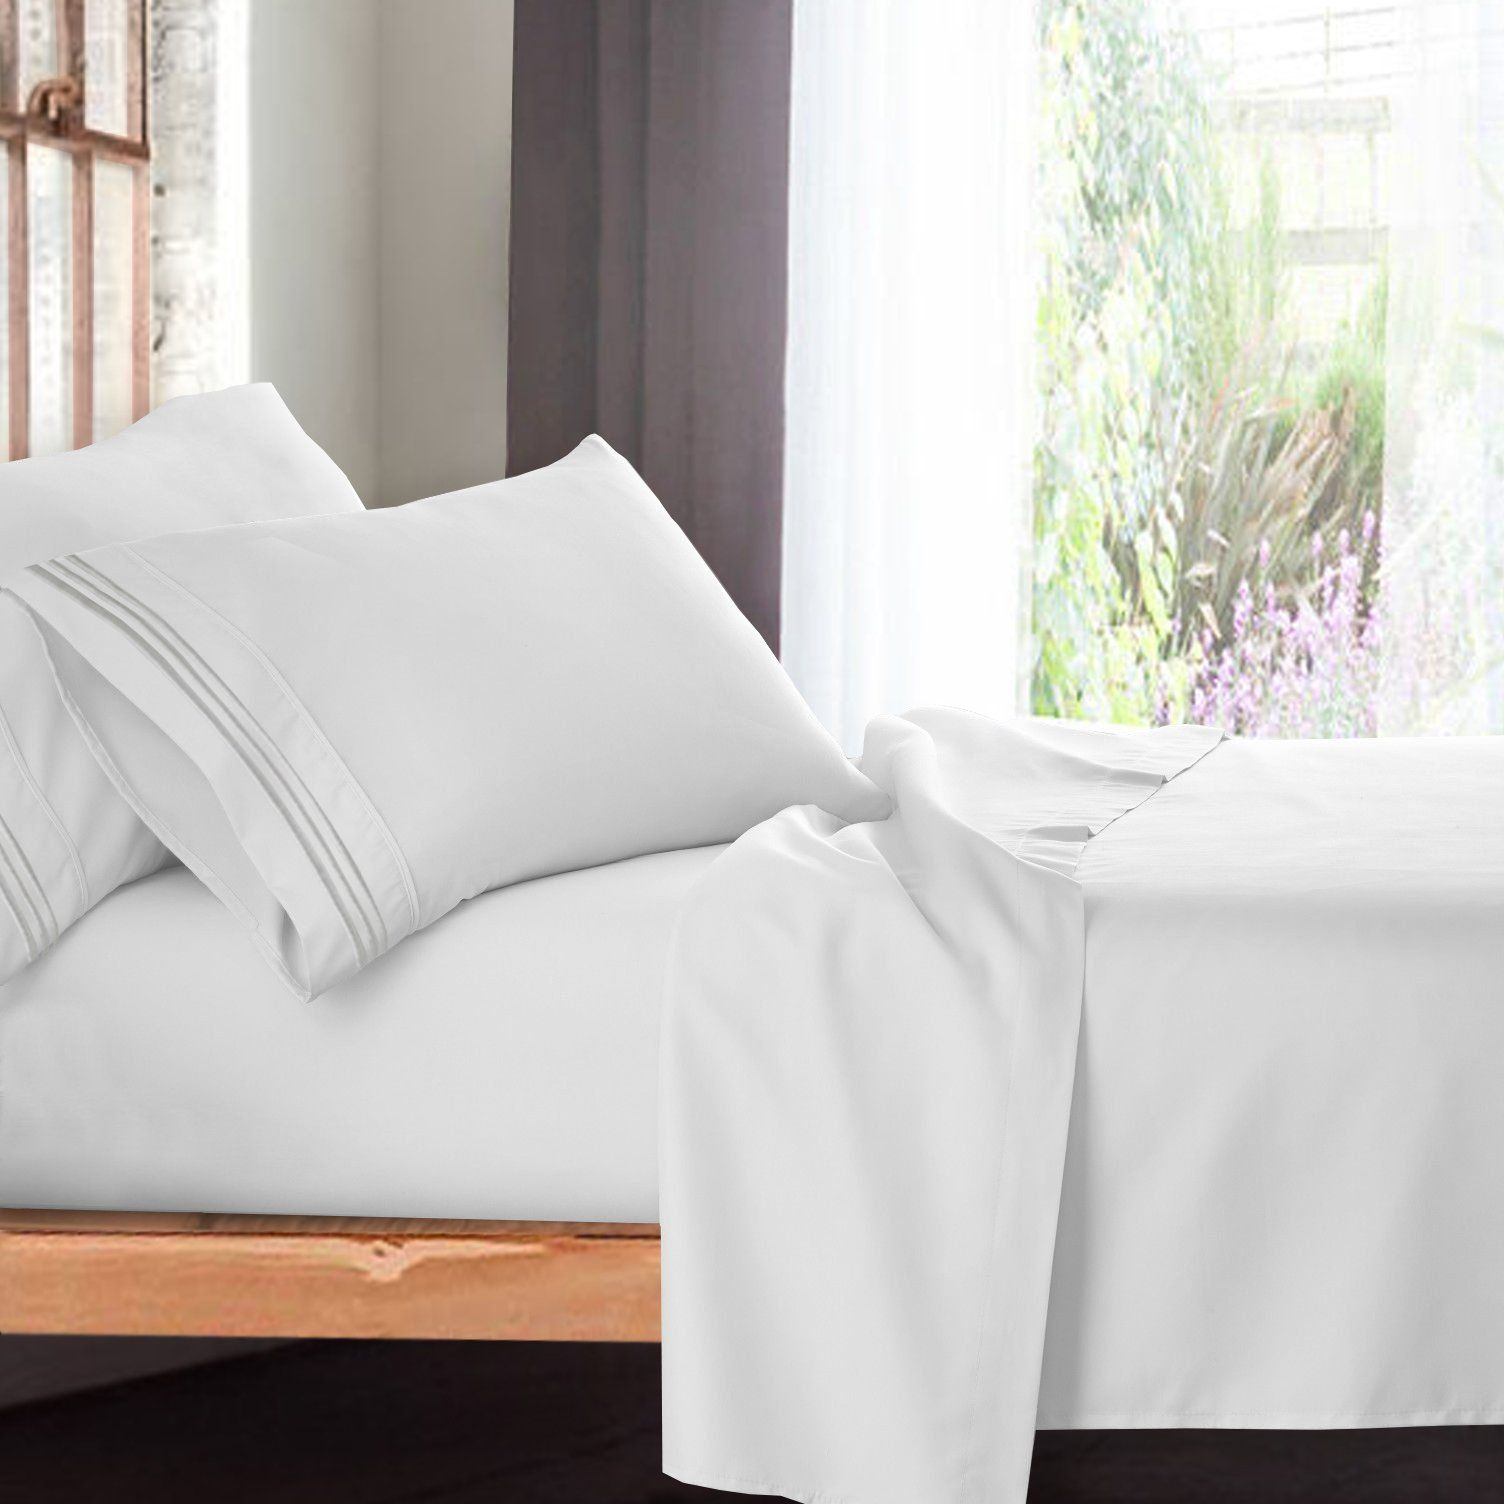 Premium King Sheets Set White Hotel Luxury 4piece Bed Set Extra Deep Pocket Special Super Fit Fitted Sheet Best White Sheets King Sheet Sets King Size Sheets